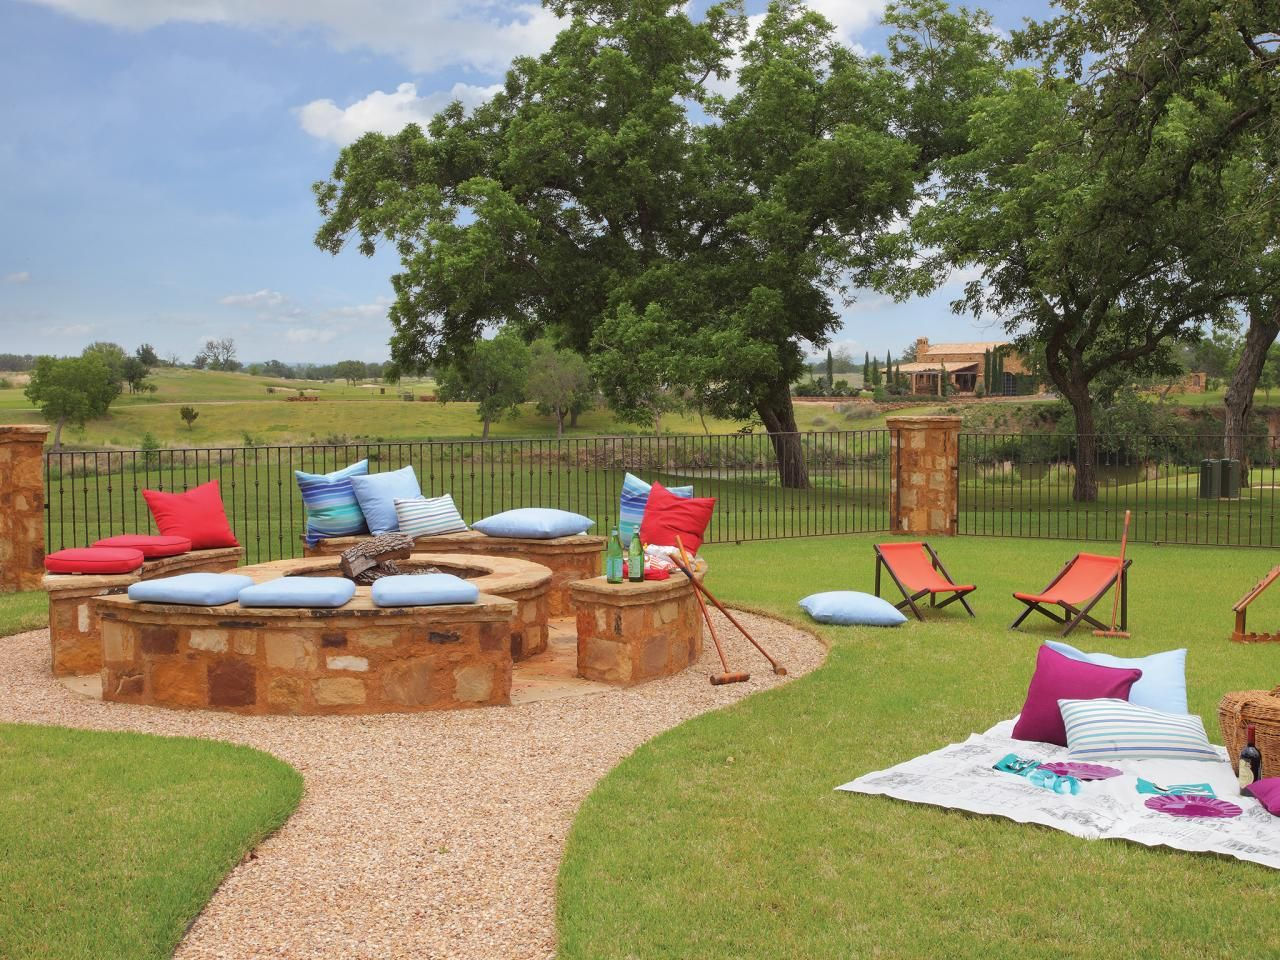 family-friendly outdoor spaces | picnic area, bonfires and picnics - Kid Friendly Patio Ideas